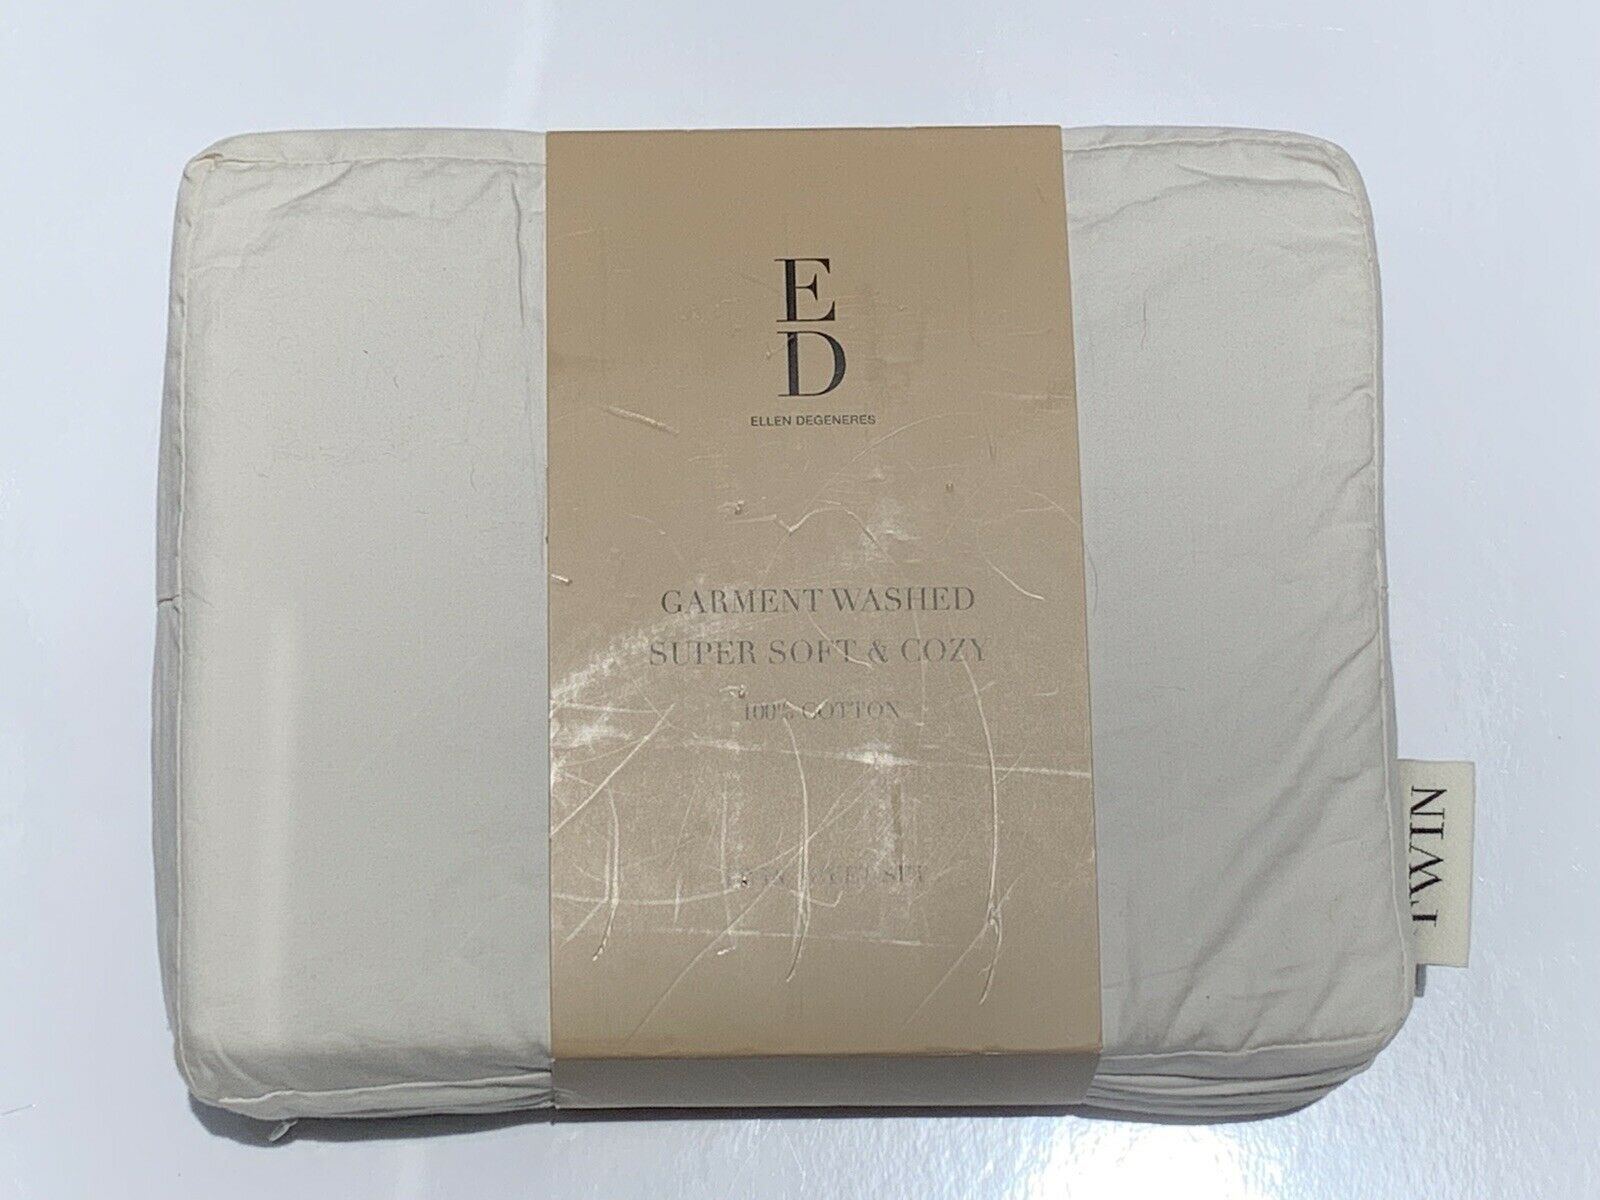 ED Ellen DeGeneres Garment Washed Super Sanft & Cozy Full Sheet Set in Cream NEW